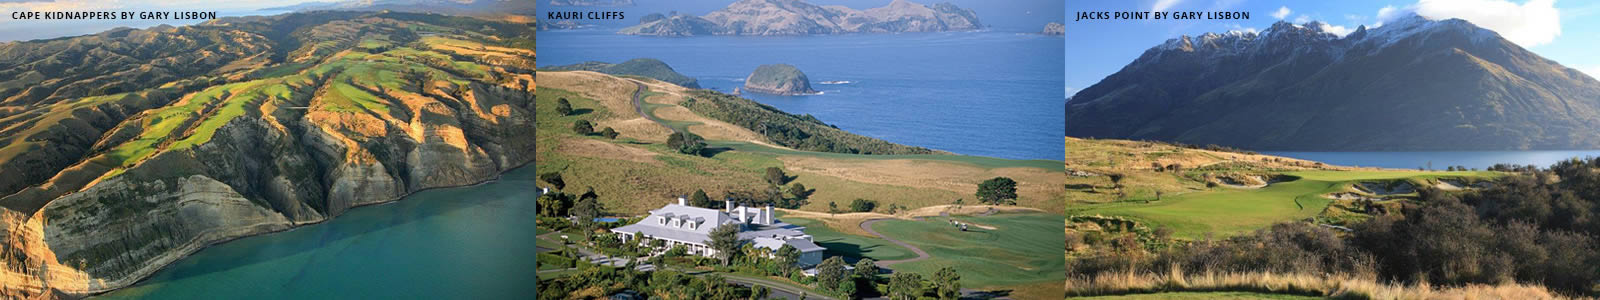 New Zealand Golf Cruises New Zealand Golf Vacation Tripsd